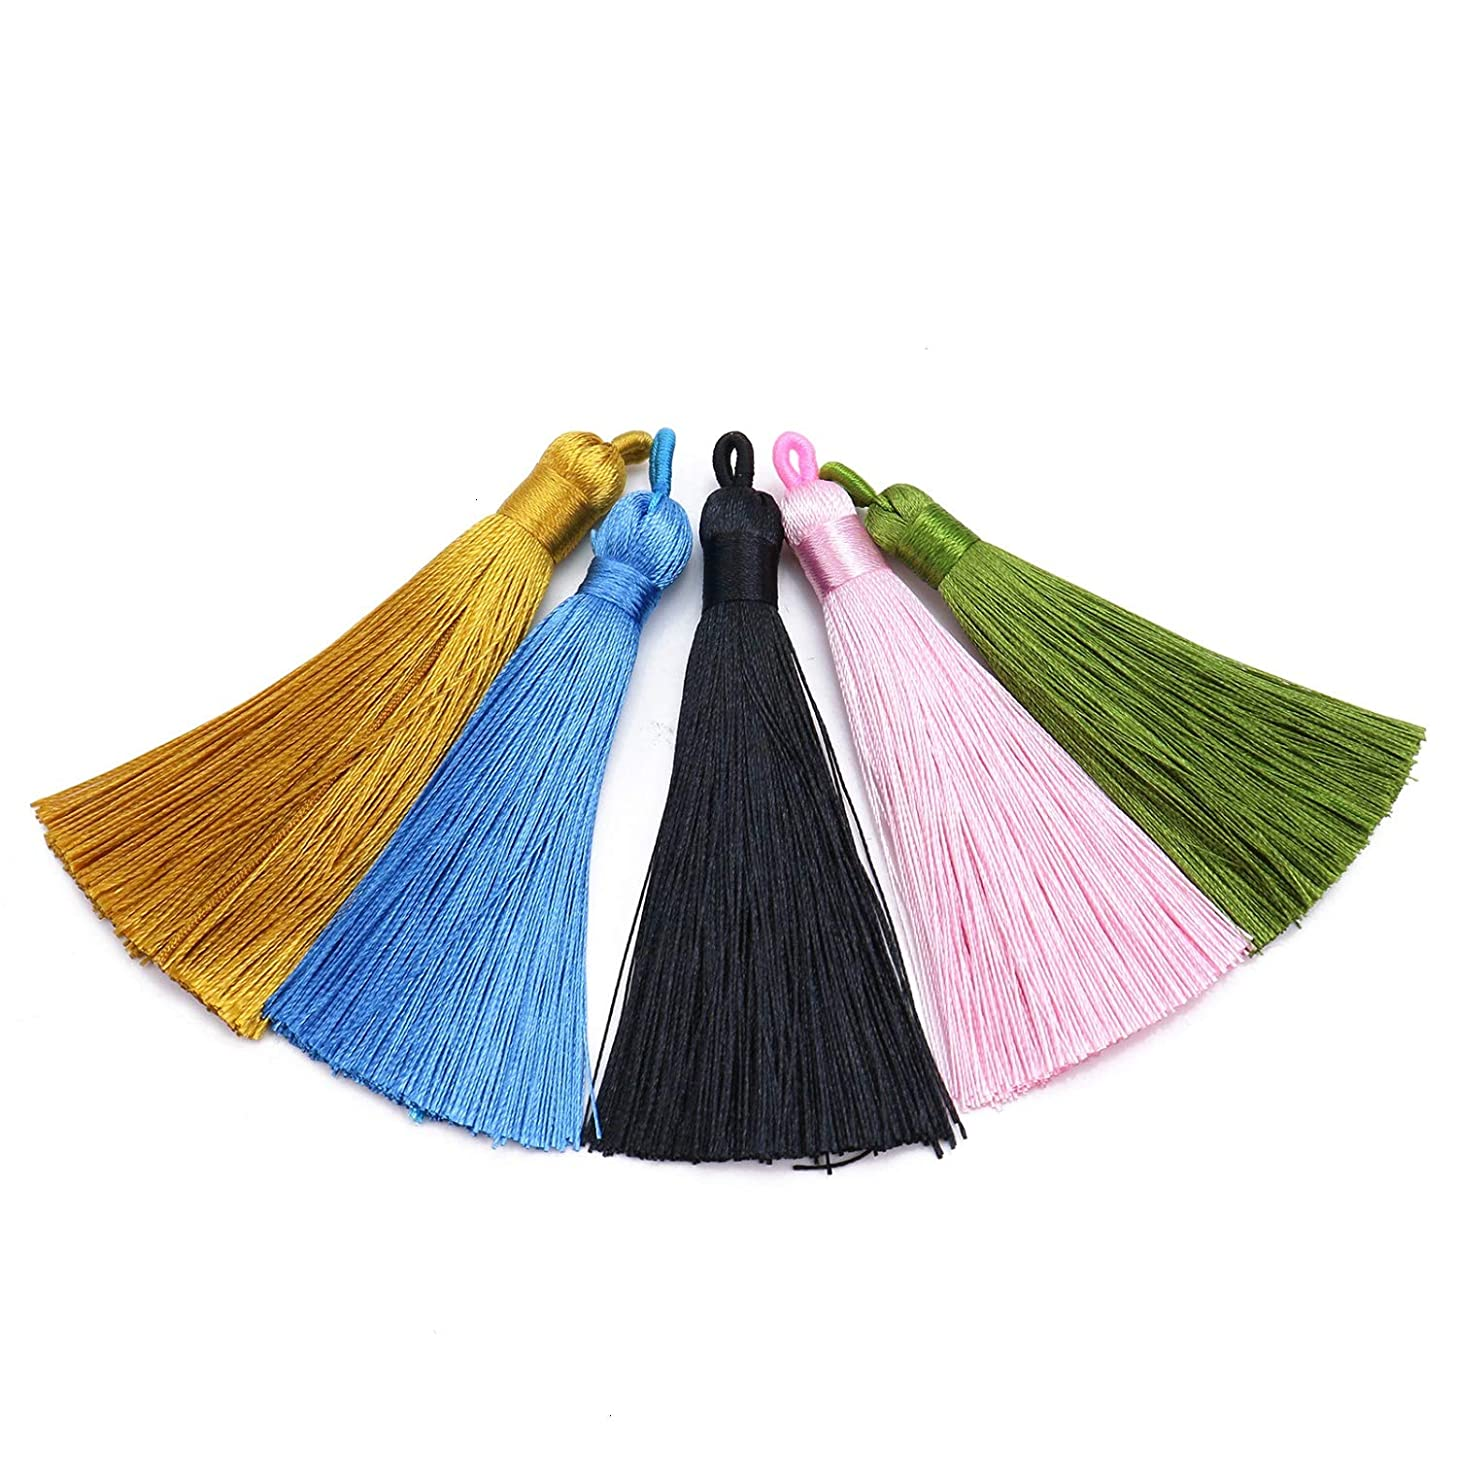 Monrocco 10pcs Multicolored Mini Imitation Silk Tassels with Hanging Loop for Jewelry Making, DIY Crafts Accessories (5 Color)